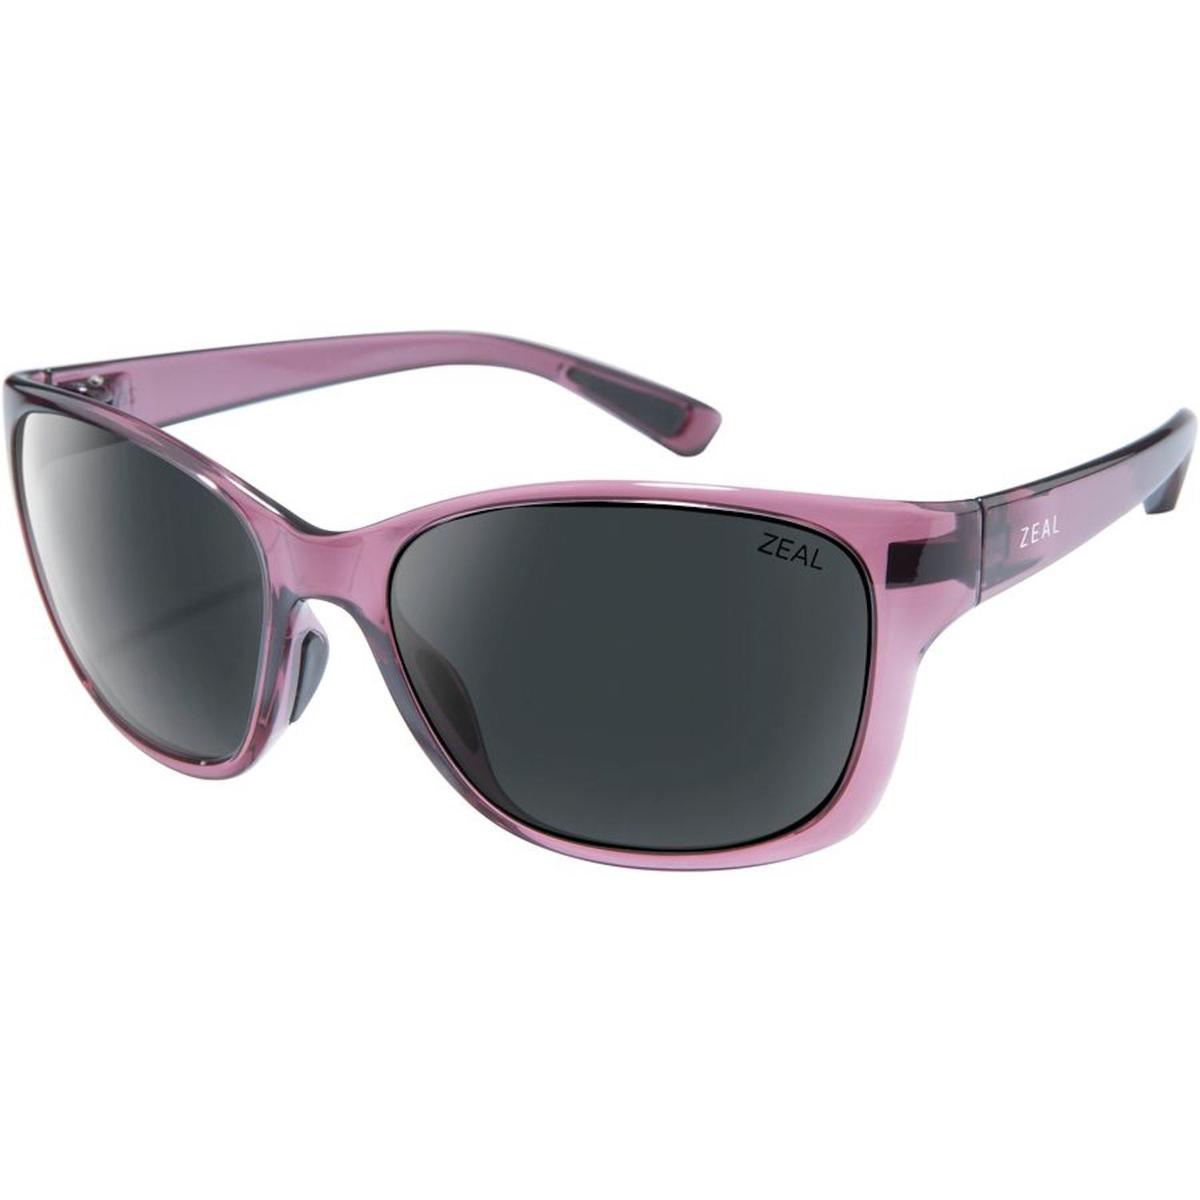 Zeal Magnolia Women's Sunglasses